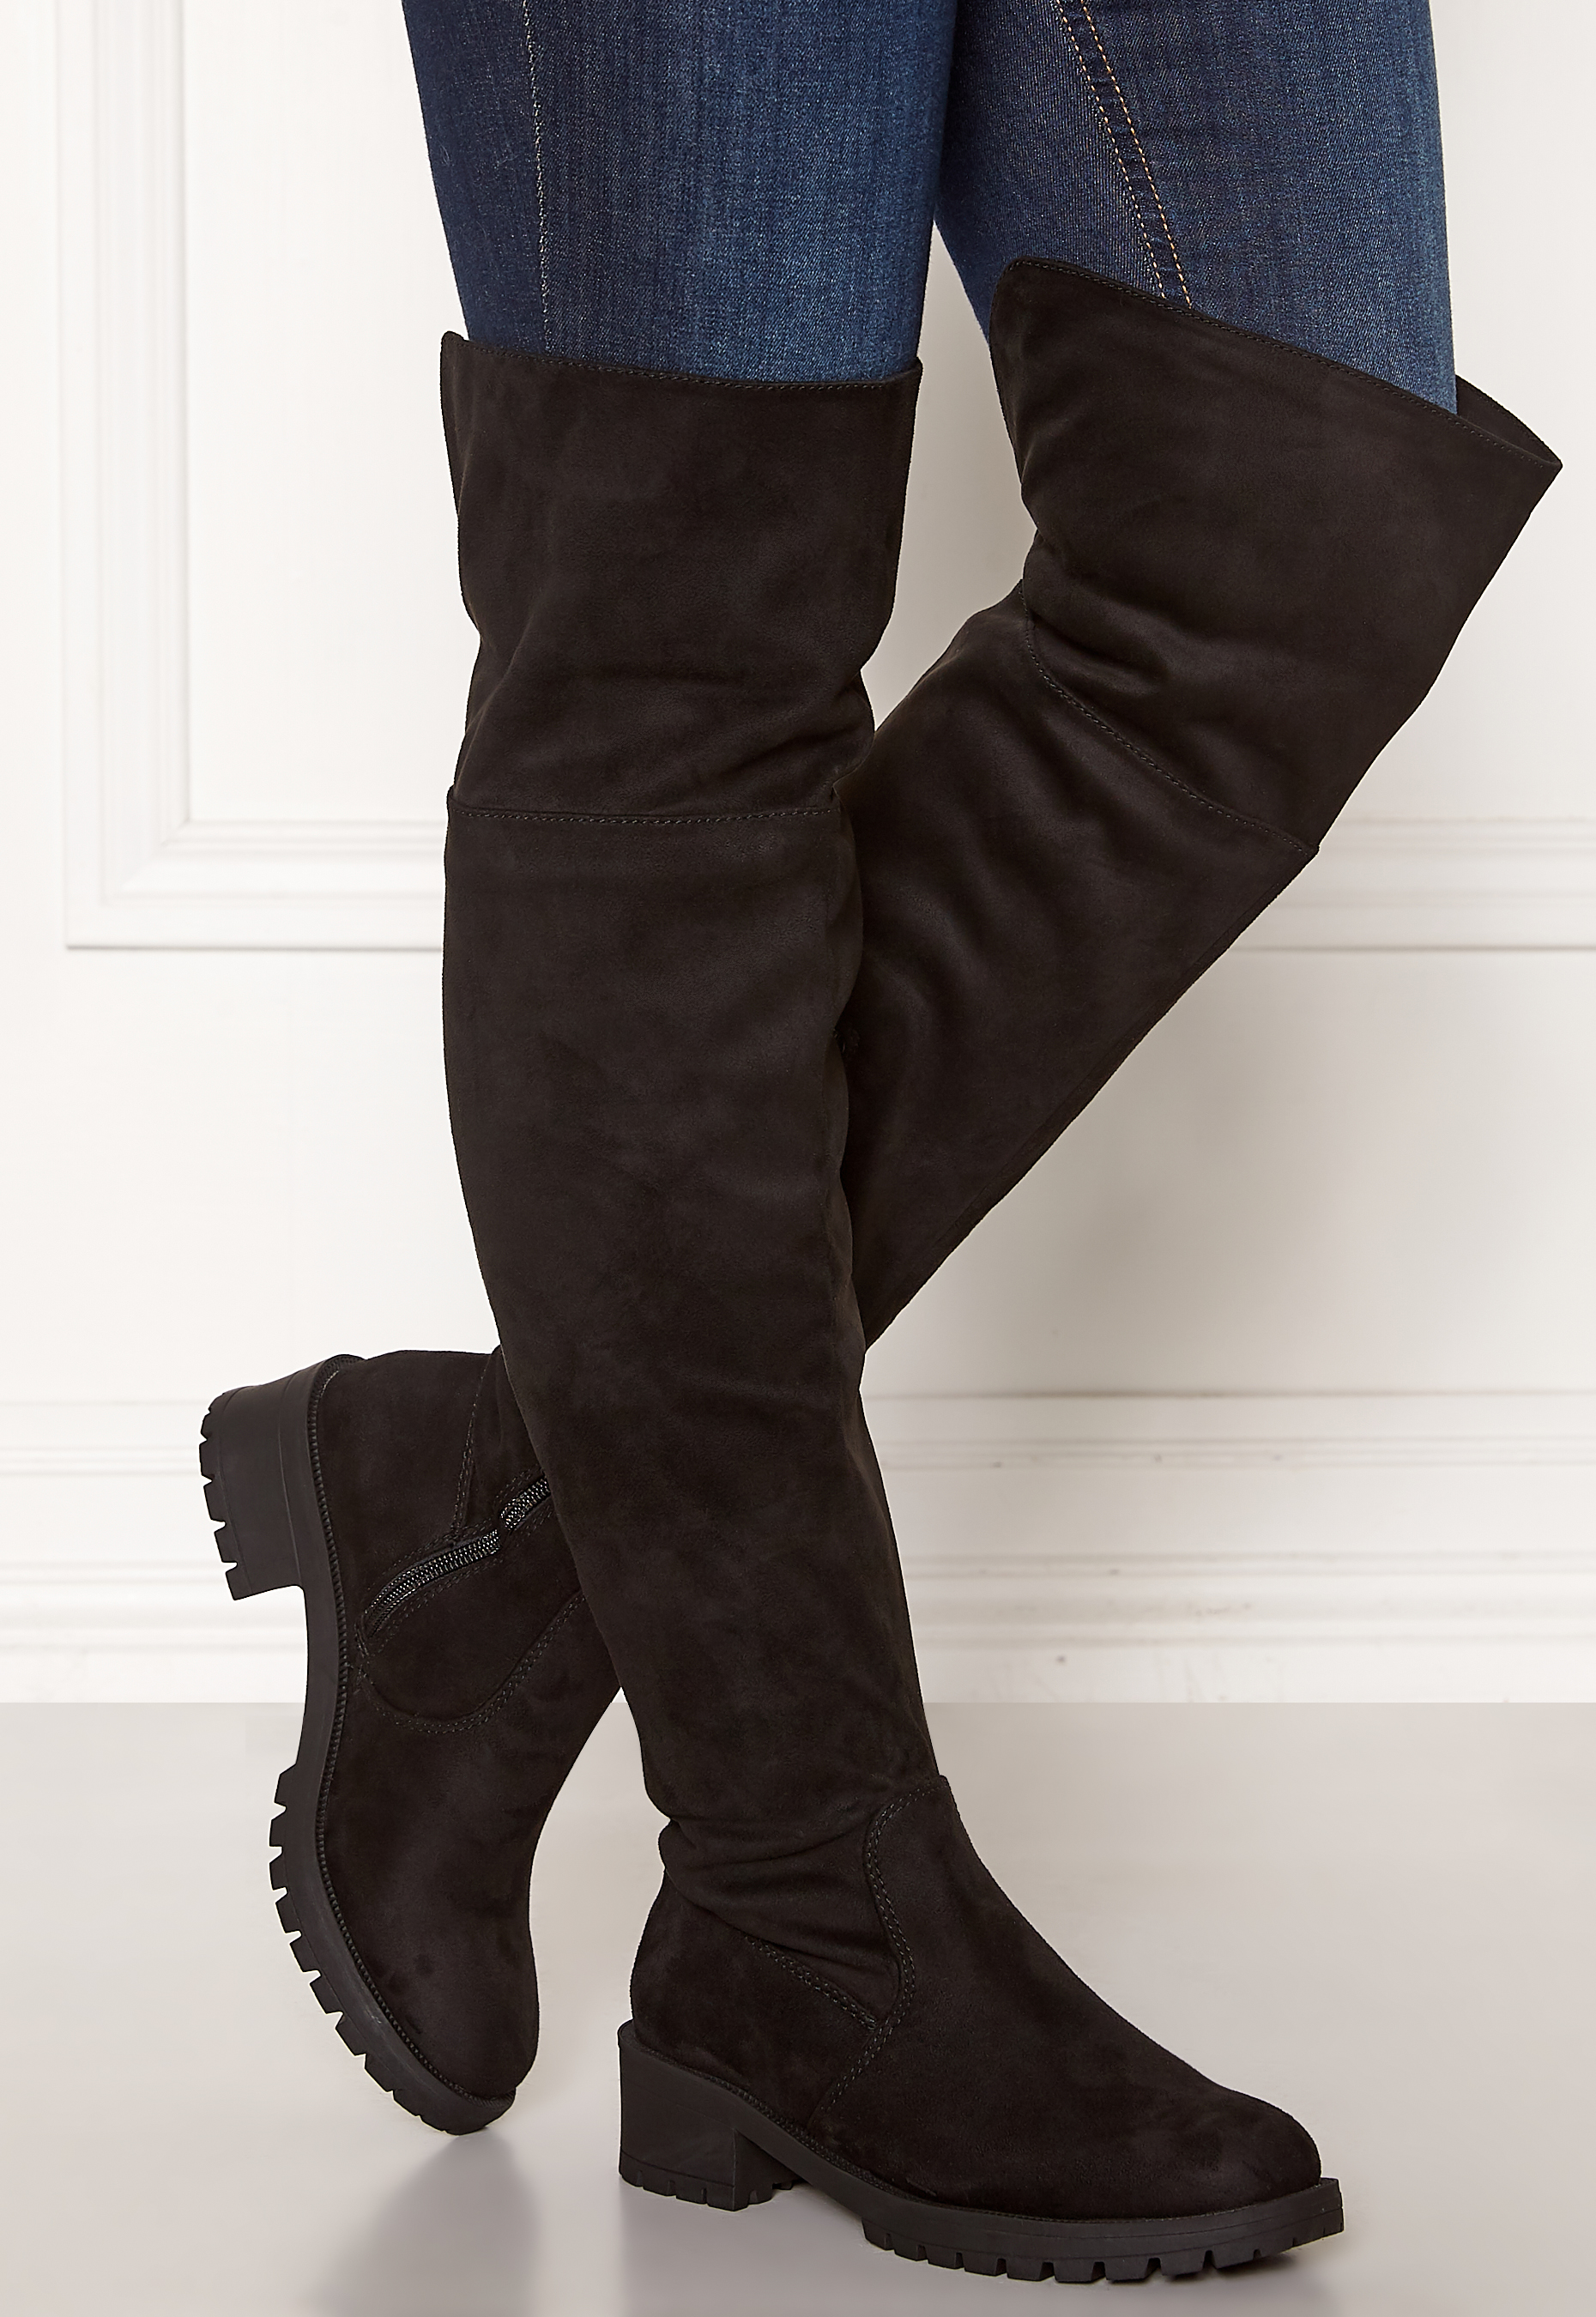 Over the Knee Boots: 20 Best Looks 2020 –